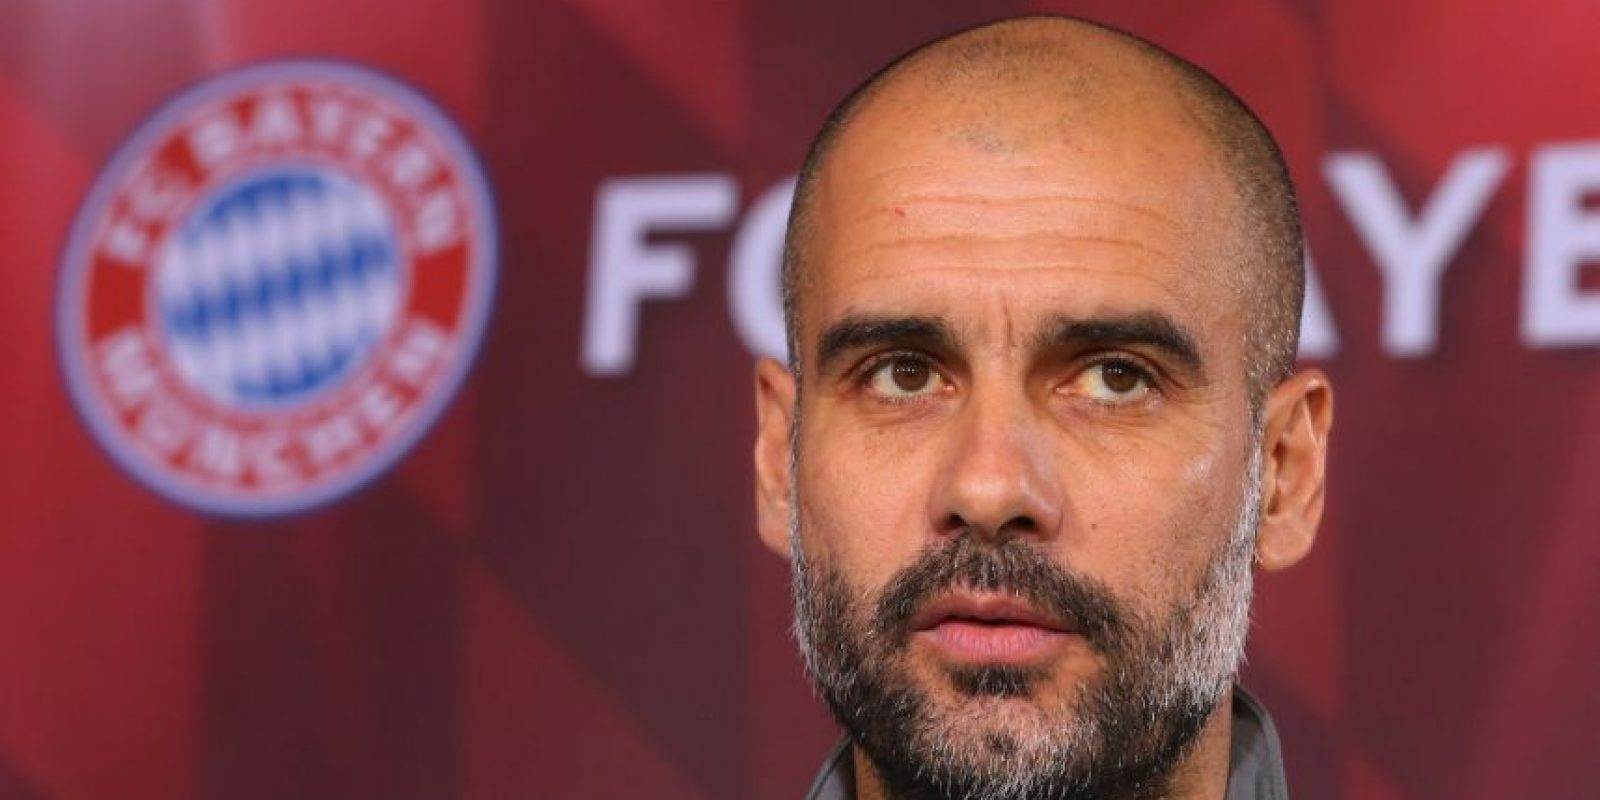 1. Pep Guardiola Foto: Getty Images